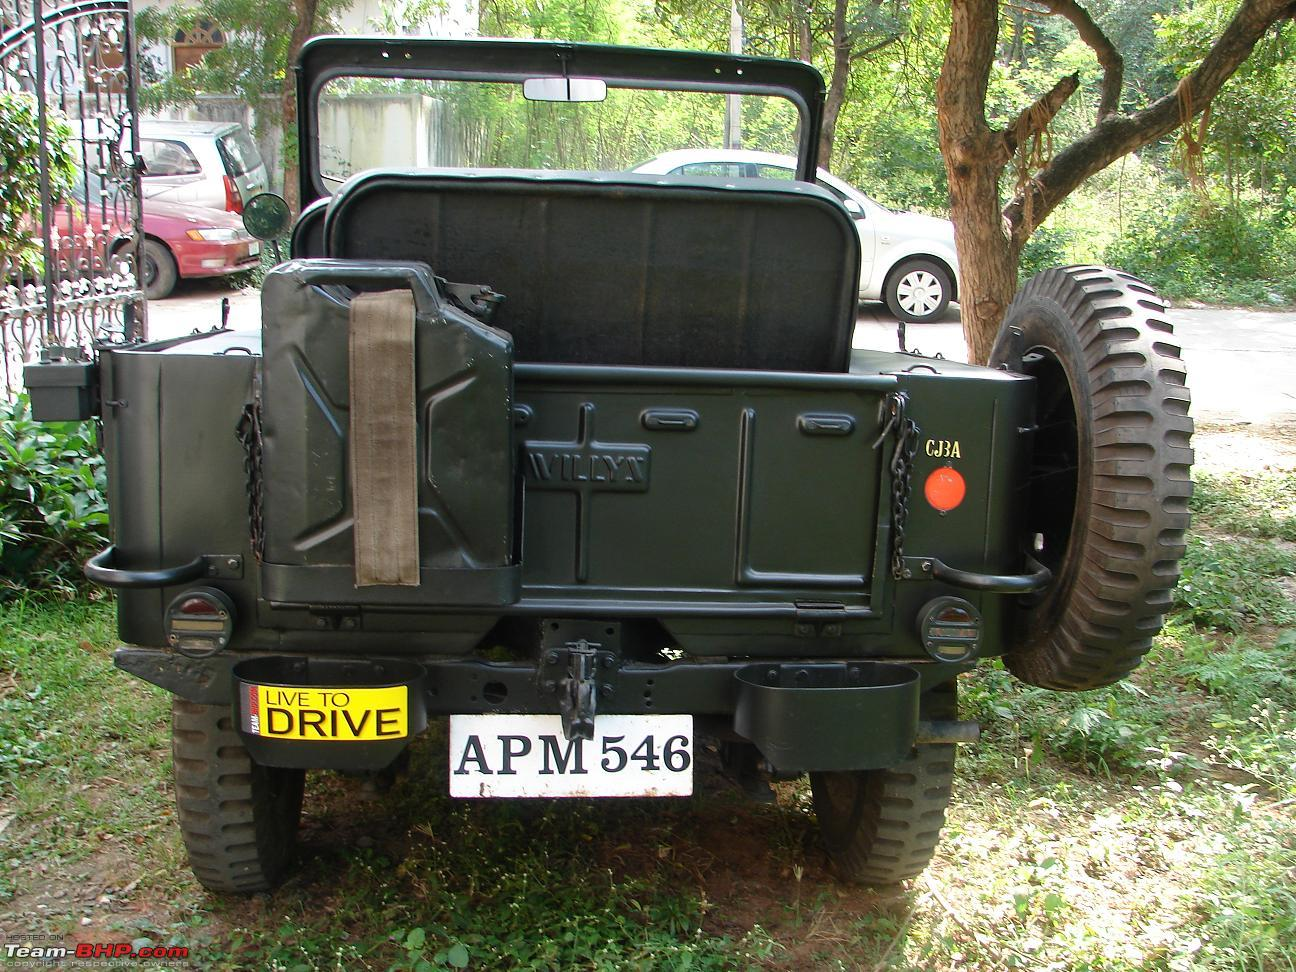 Willys Cj3a 1950 Jeep Cj 3a For Sale Restored In Hyderabad Team Bhp